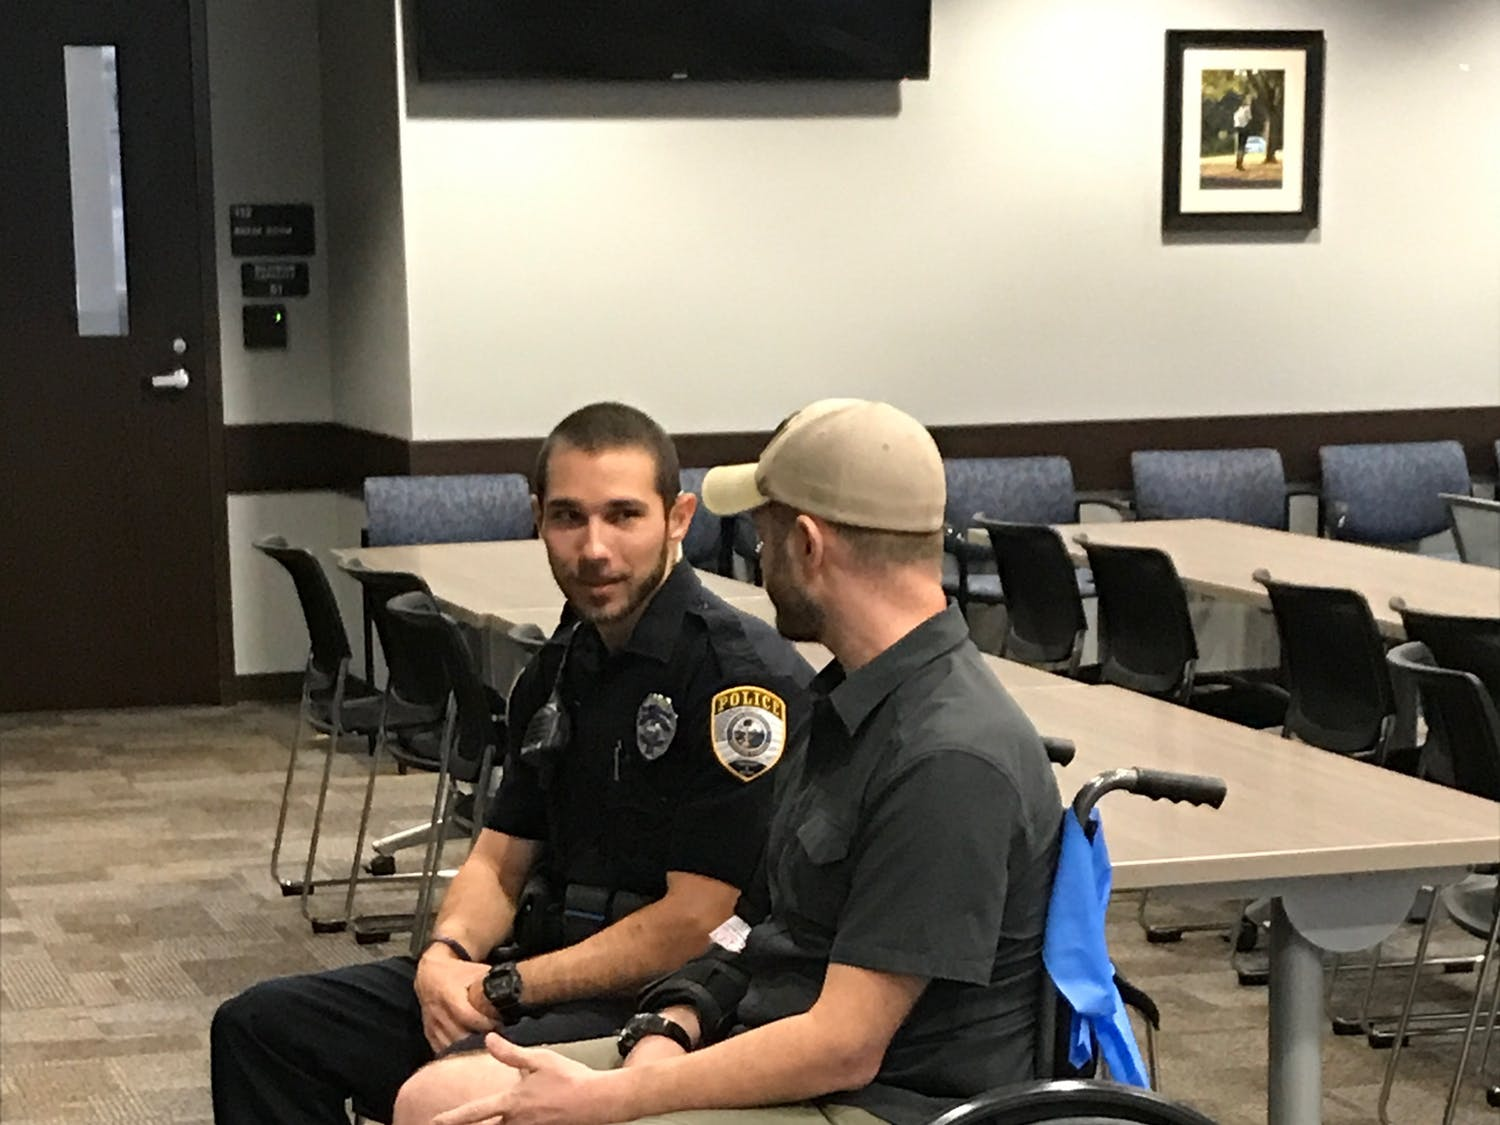 Joshua Roe, a 36-year-old UF doctoral student, and Gainesville Police officer Jack Salafrio meet on Thursday for the first time after Salafrio responded to a crash on Jan. 6 and rescued Roe. Roe was run over by his own car, which was stolen, police said.